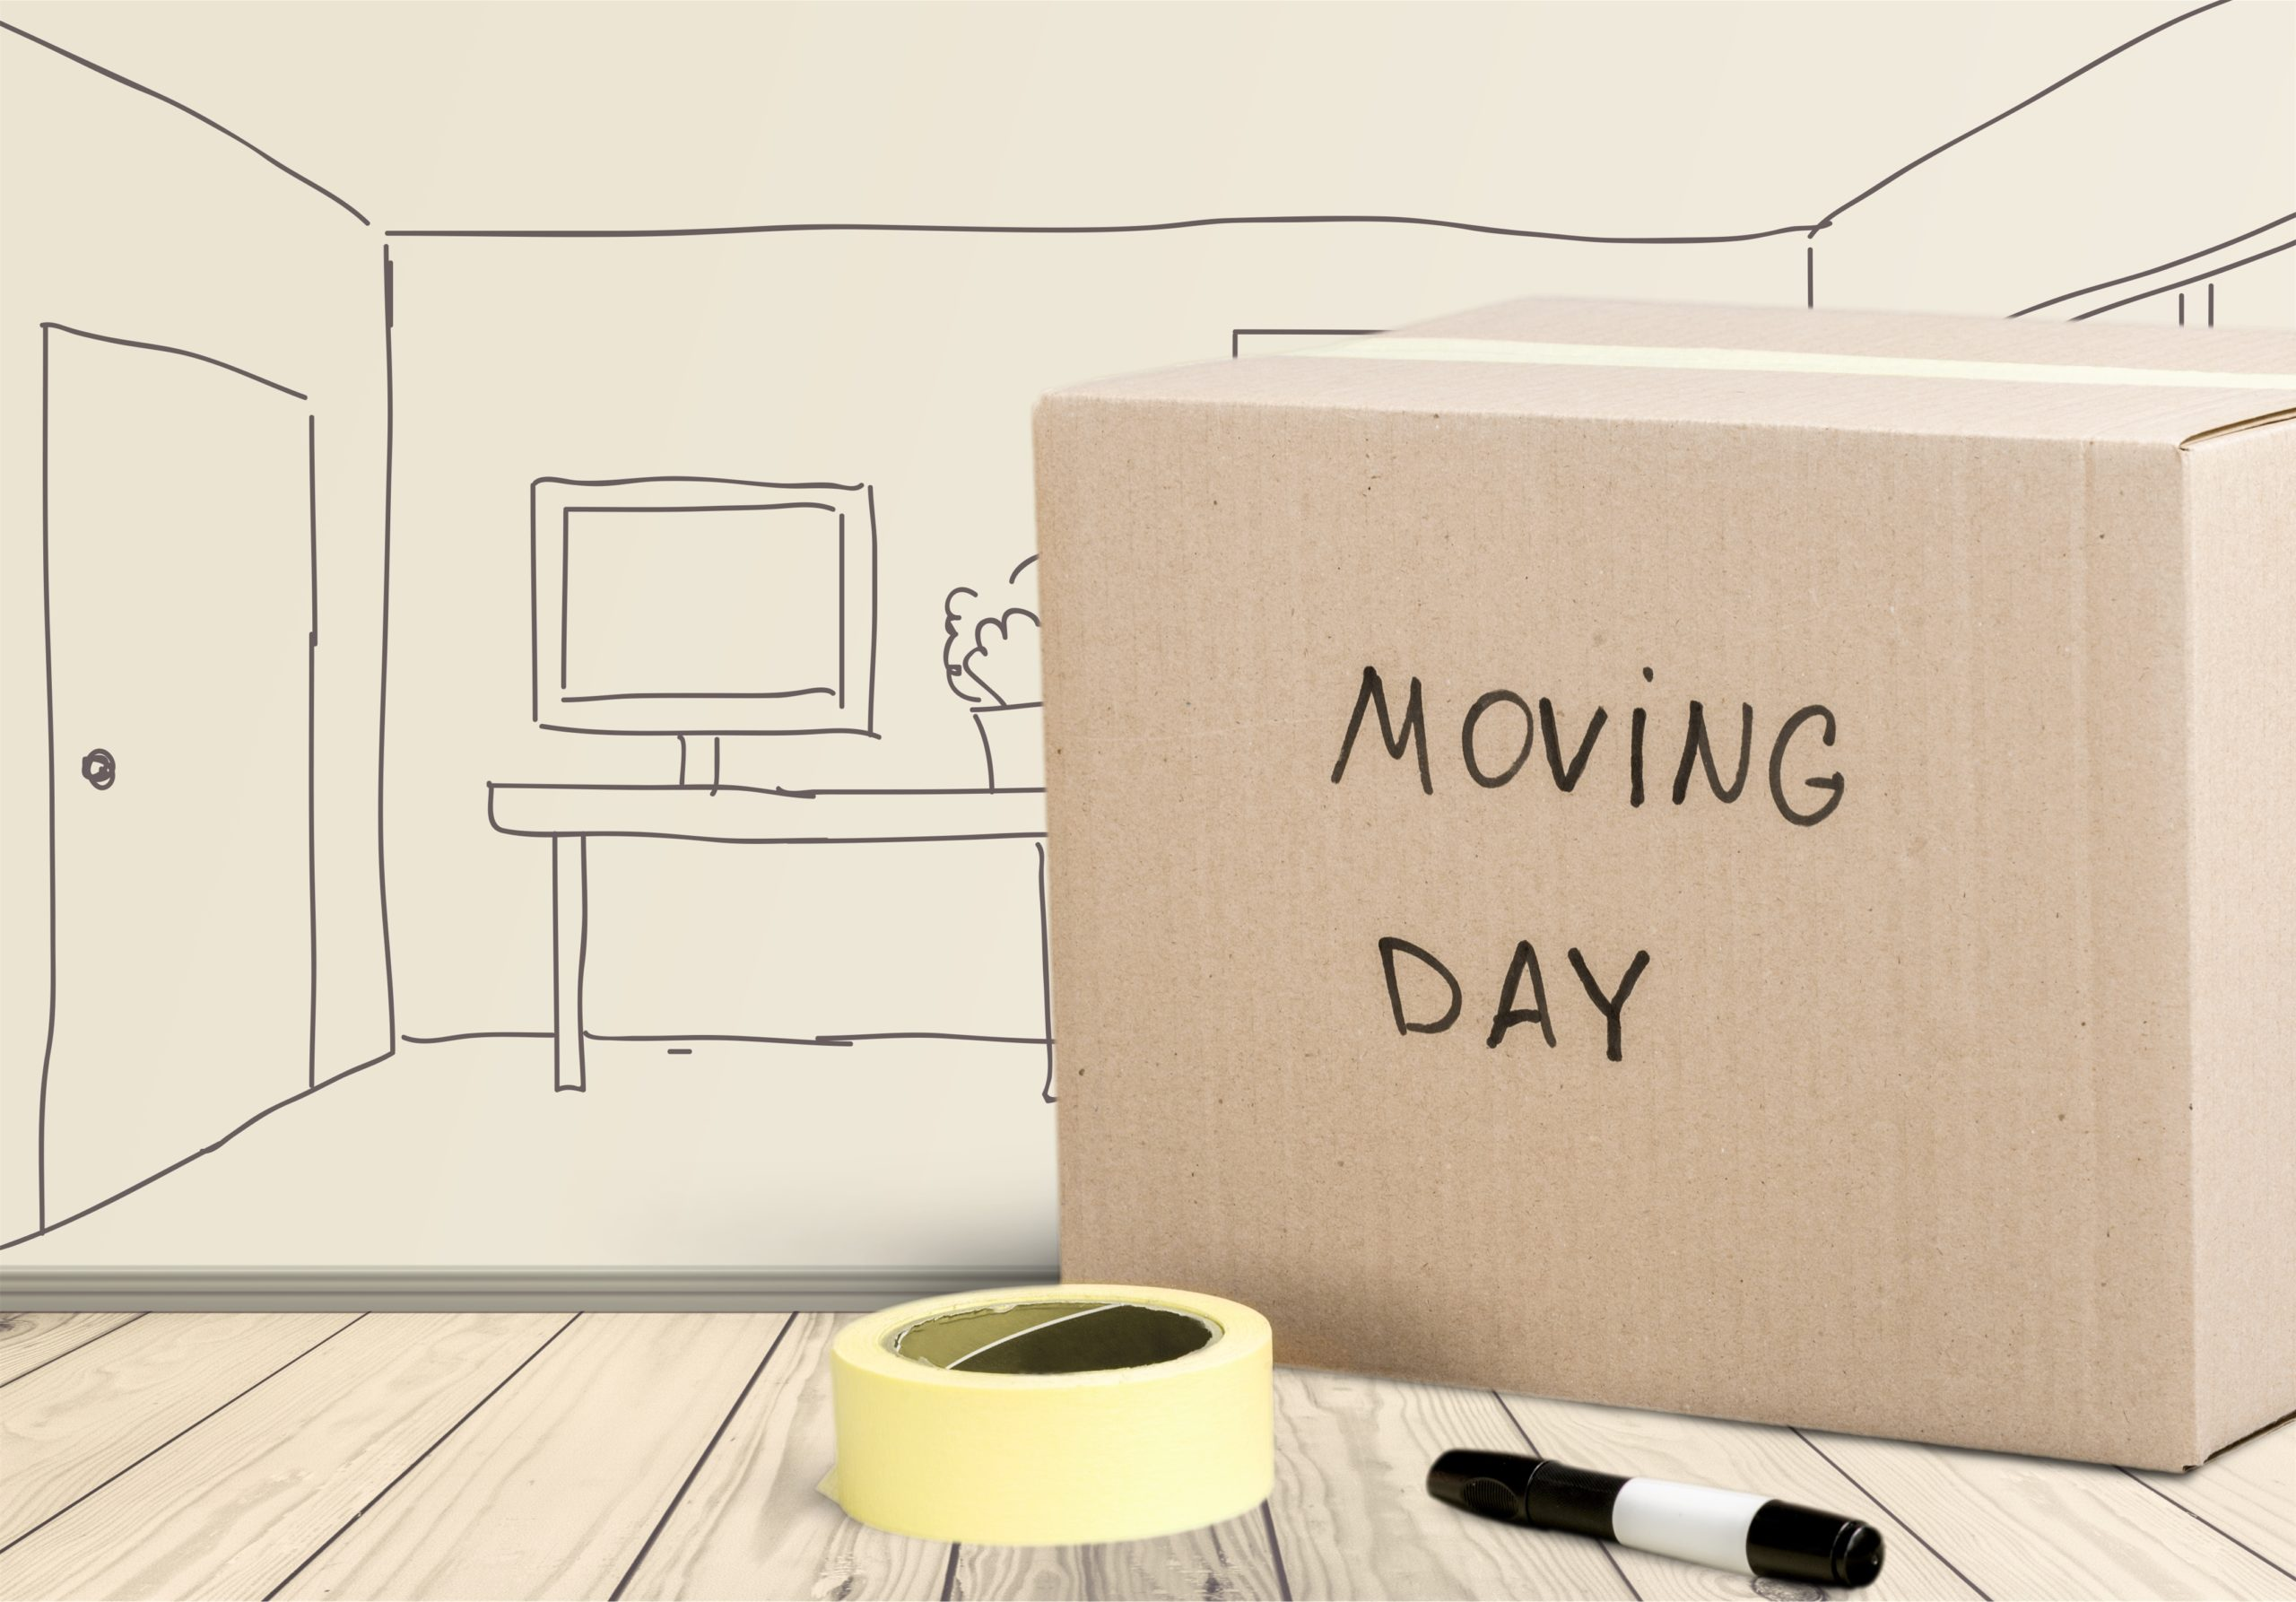 Looking For Ways To Cut Moving Costs?